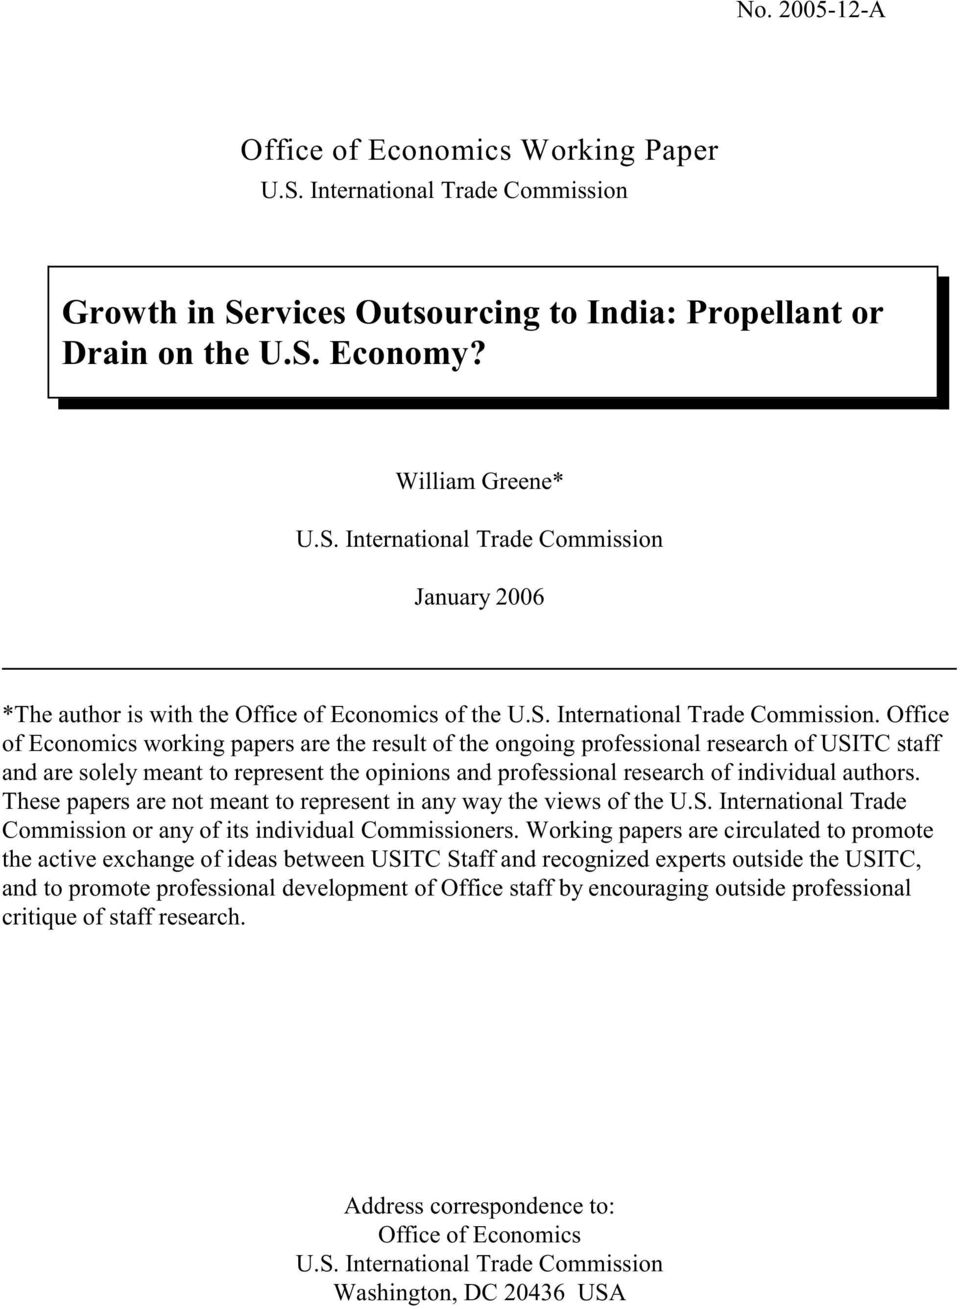 Office of Economics working papers are the result of the ongoing professional research of USITC staff and are solely meant to represent the opinions and professional research of individual authors.